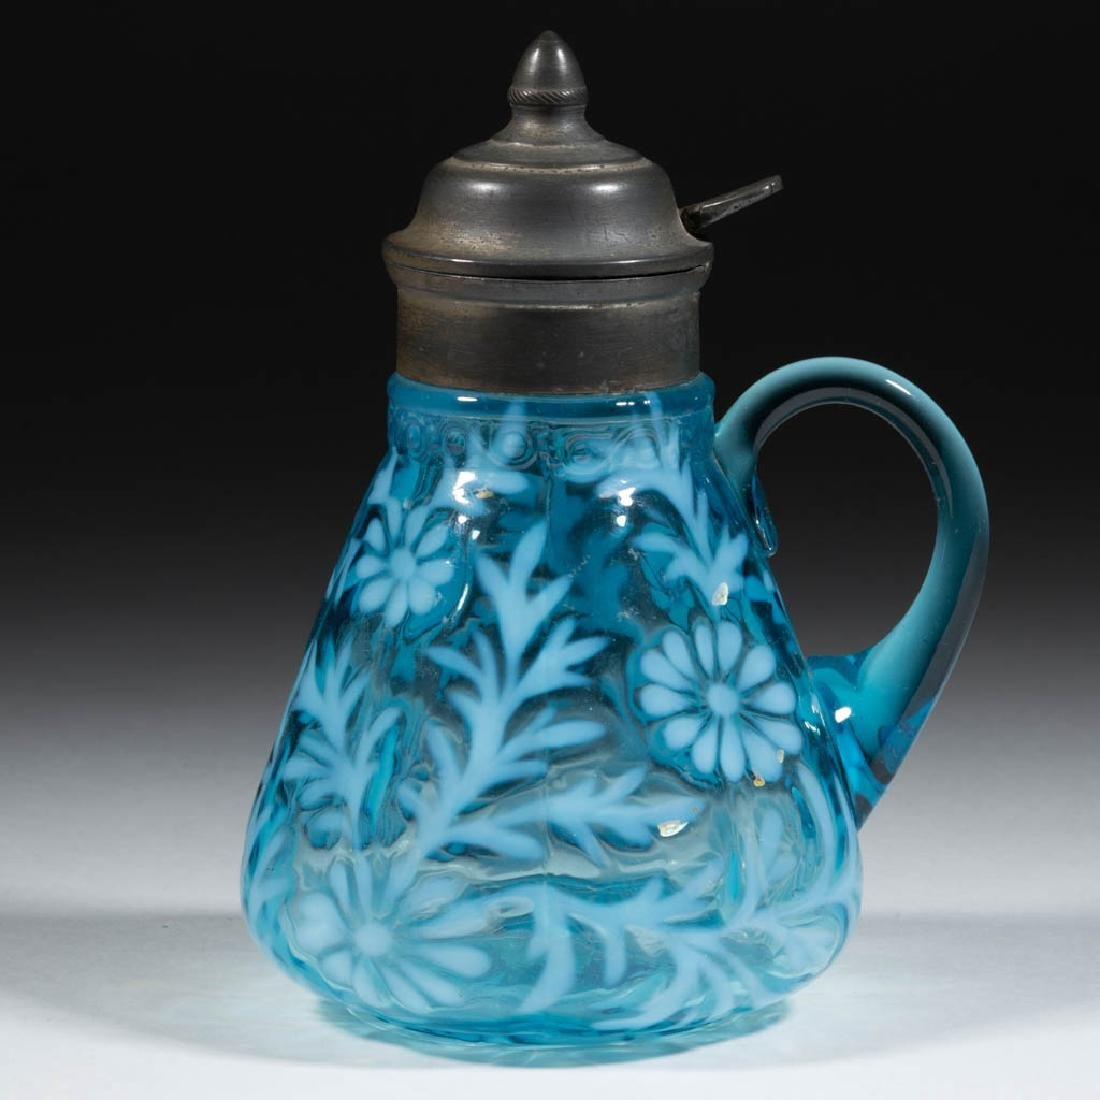 DAISY AND FERN - W. VA OPTIC MOLD SYRUP PITCHER